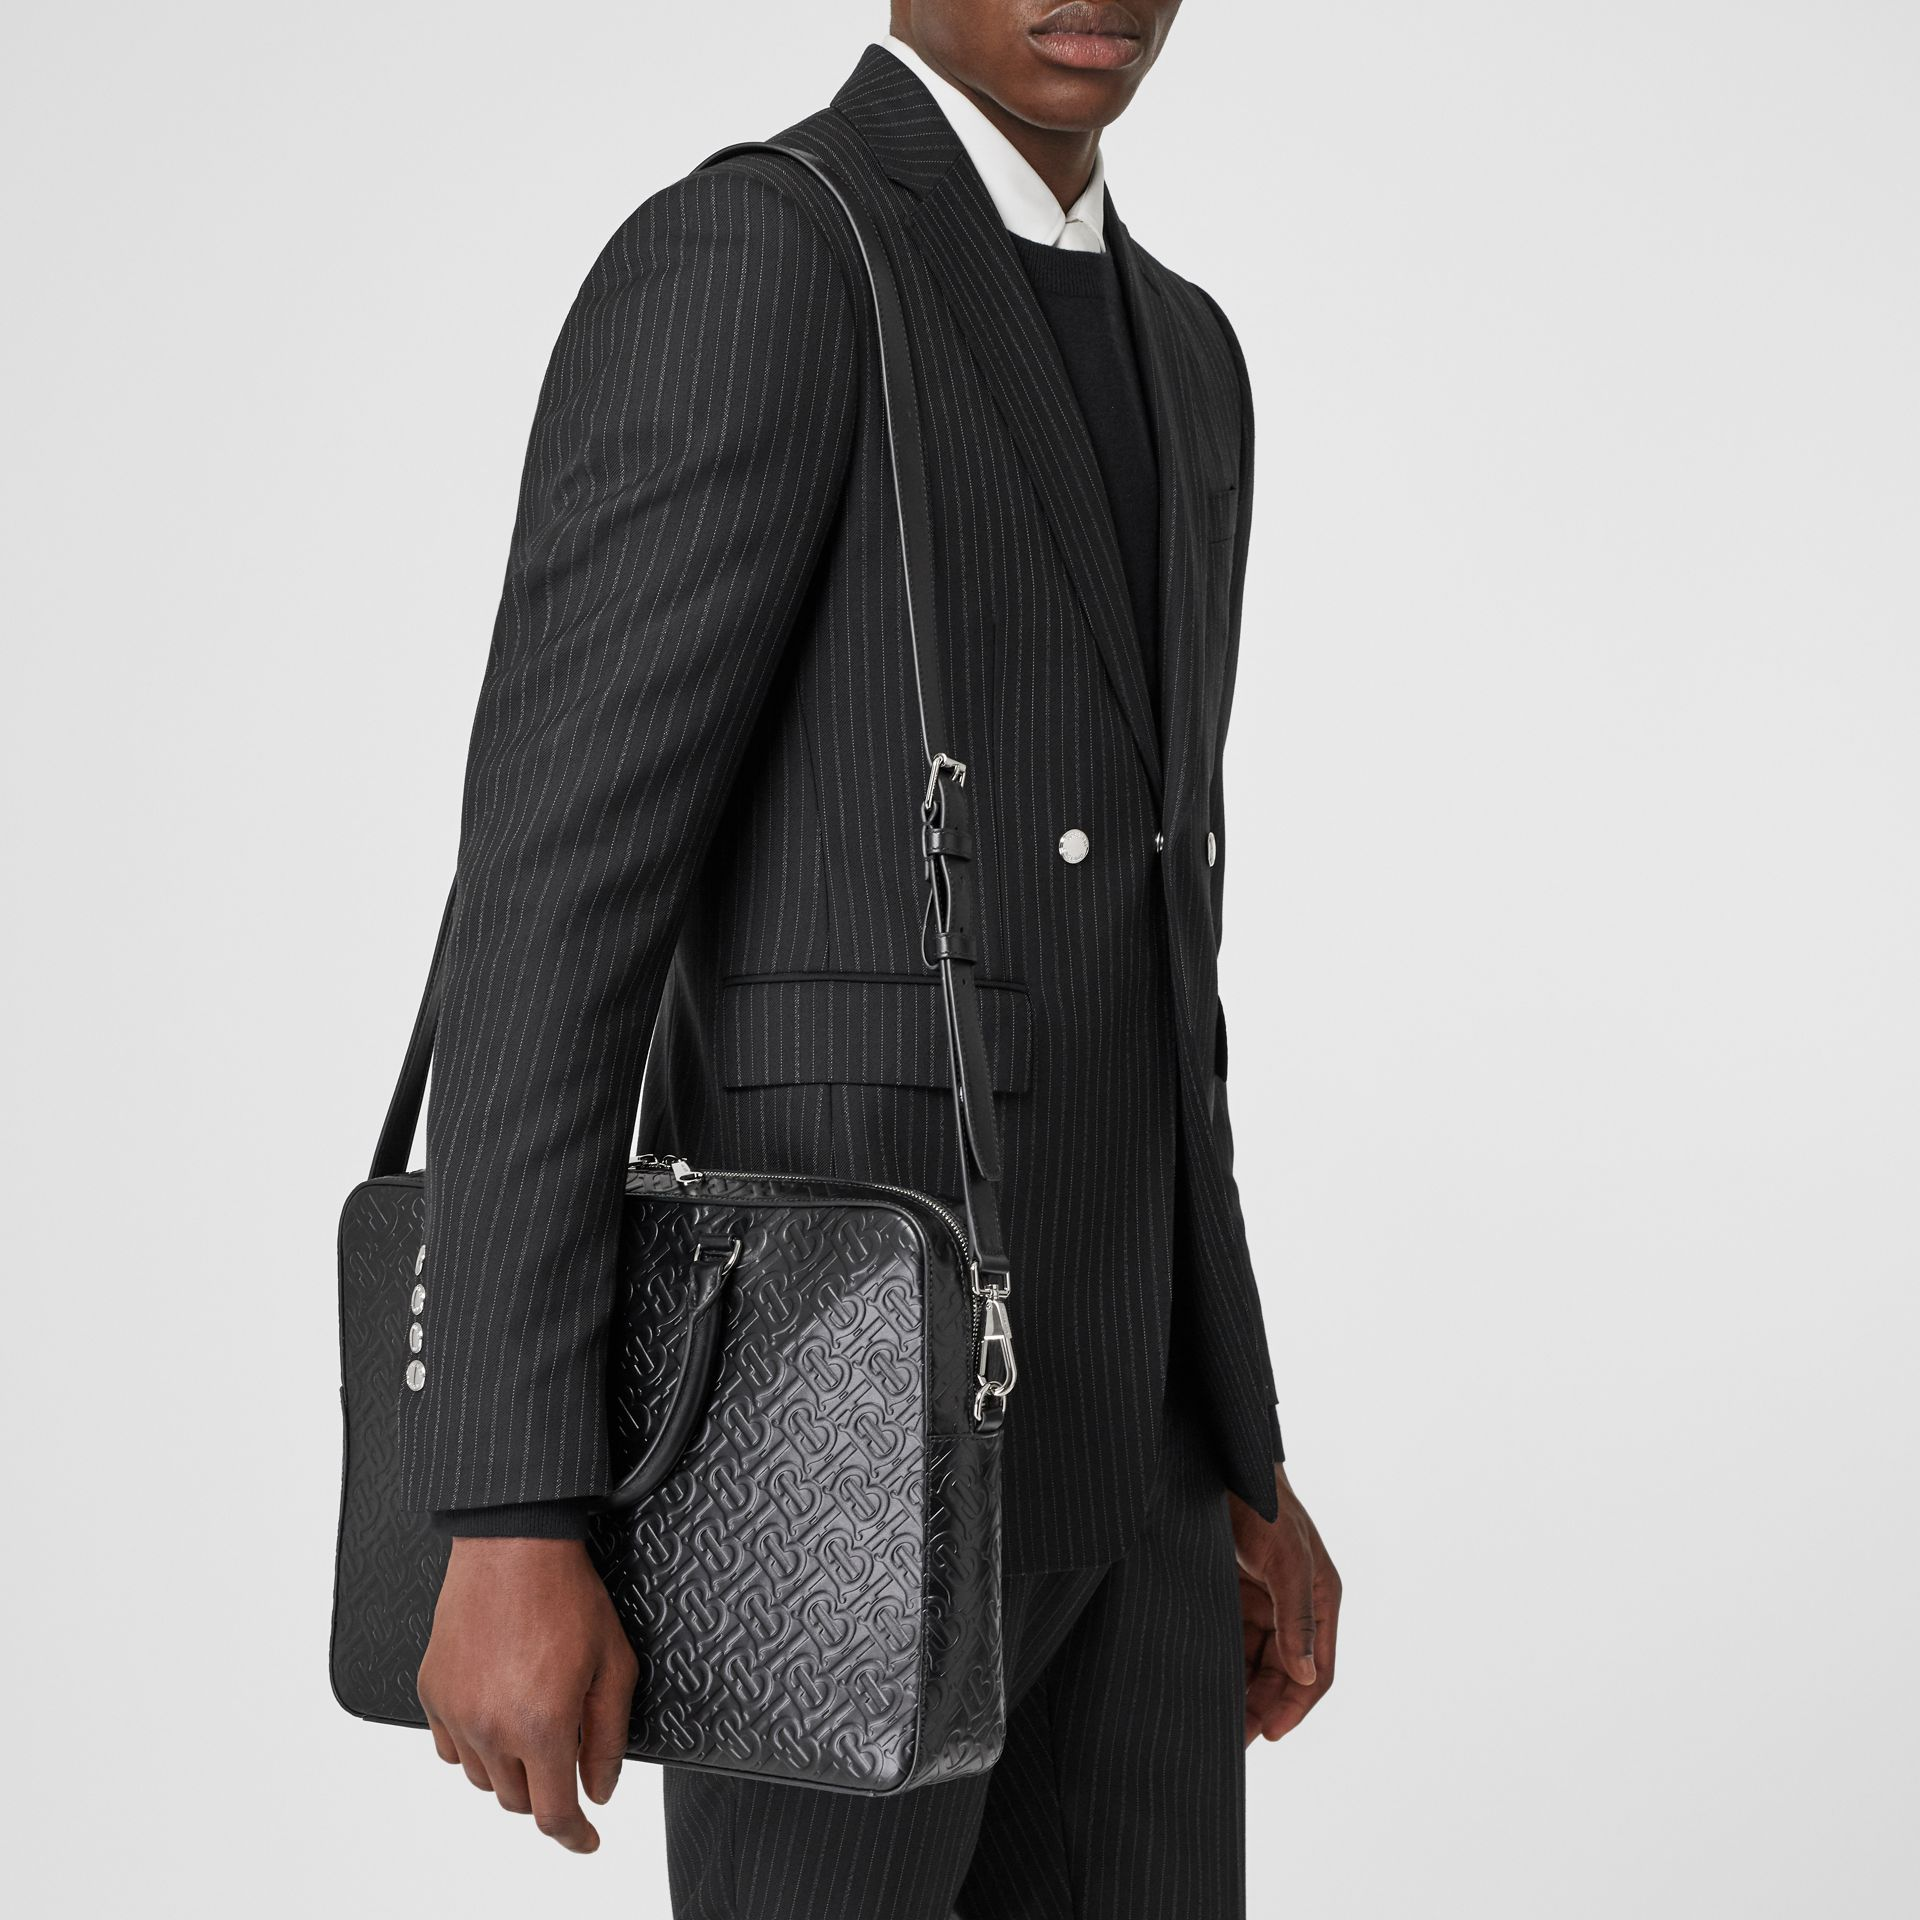 Monogram Leather Briefcase in Black - Men | Burberry Singapore - gallery image 2